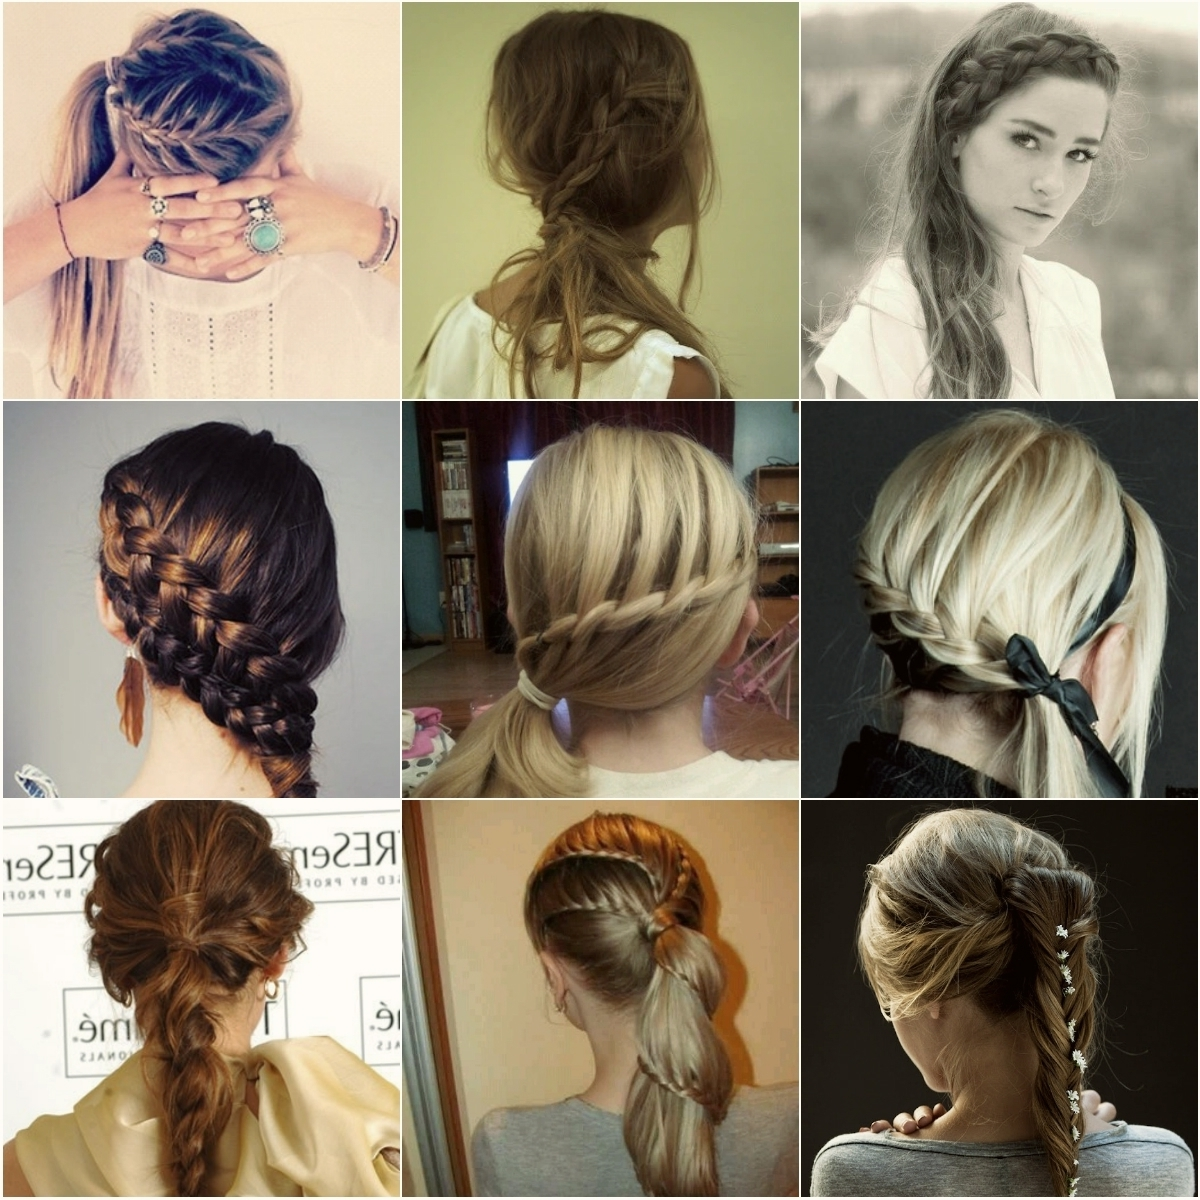 Braided Hairstyles Gallery 2018 — Braided Hairstyles Gallery 2018 With Recent Artistically Undone Braid Hairstyles (View 3 of 15)